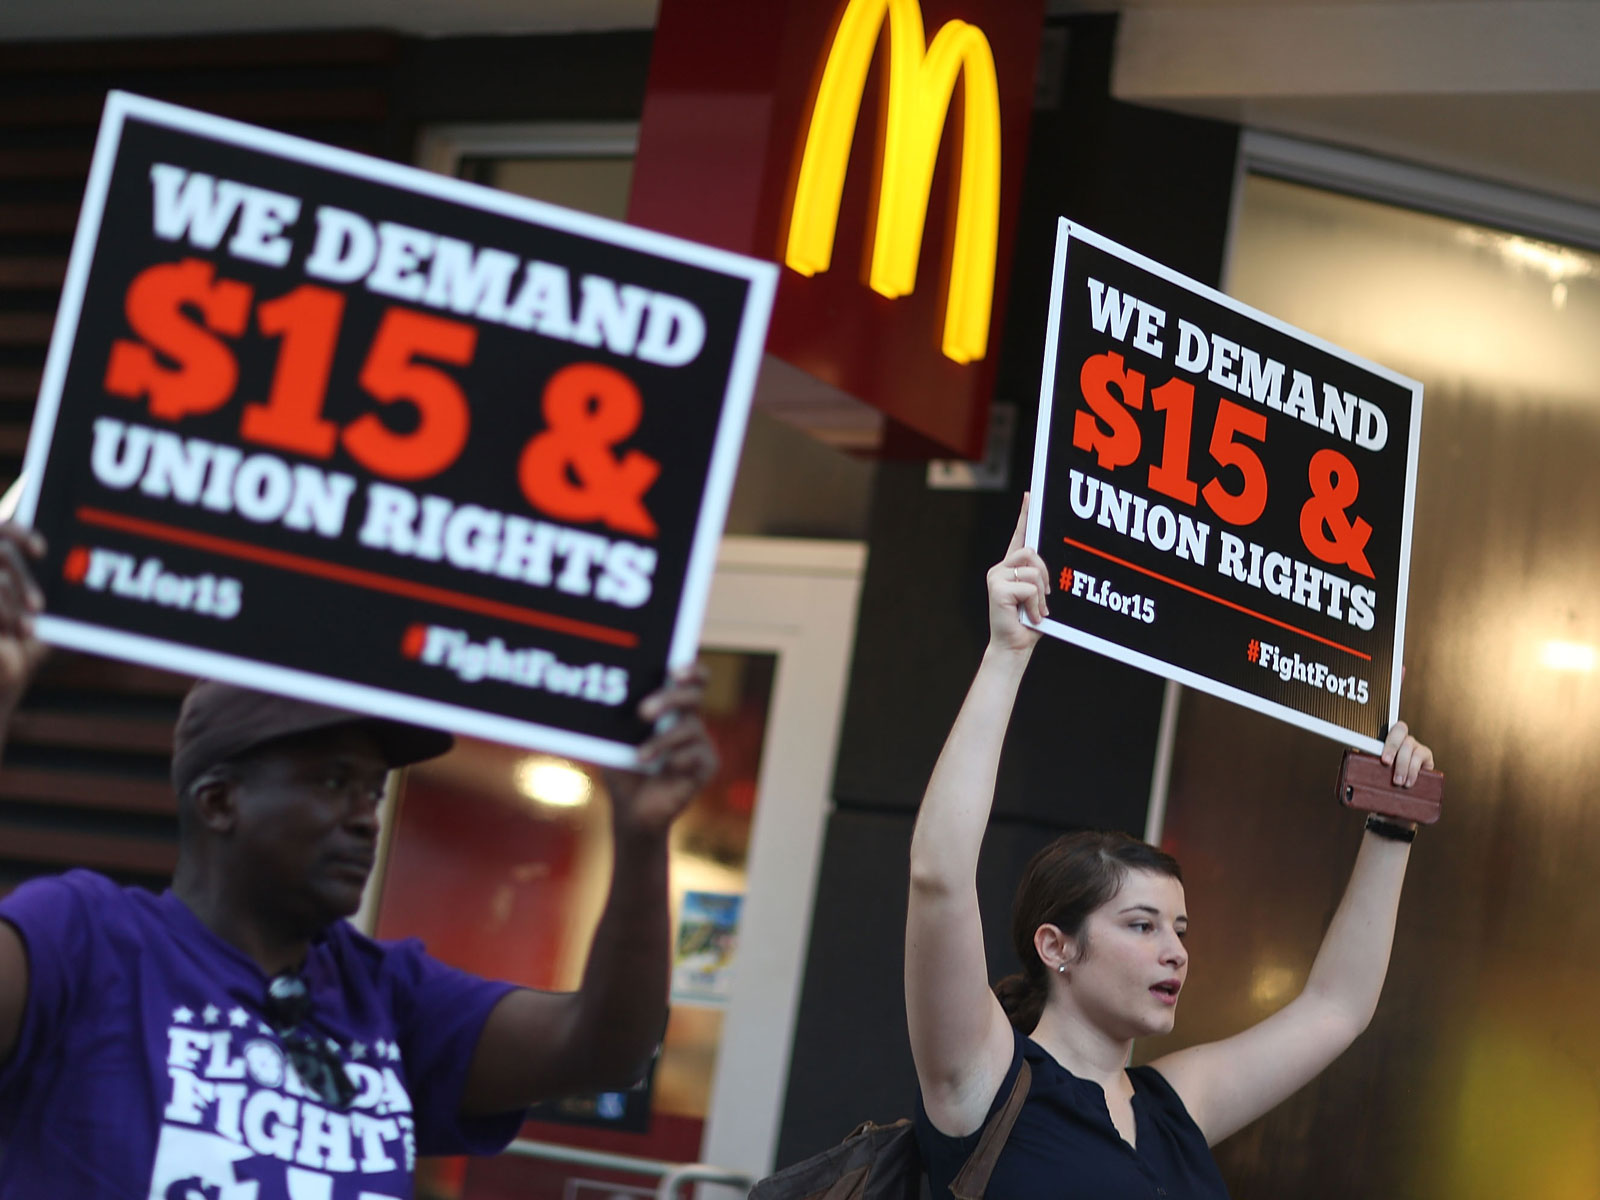 mcdonalds-minumum-wage-FT-BLOG0319.jpg